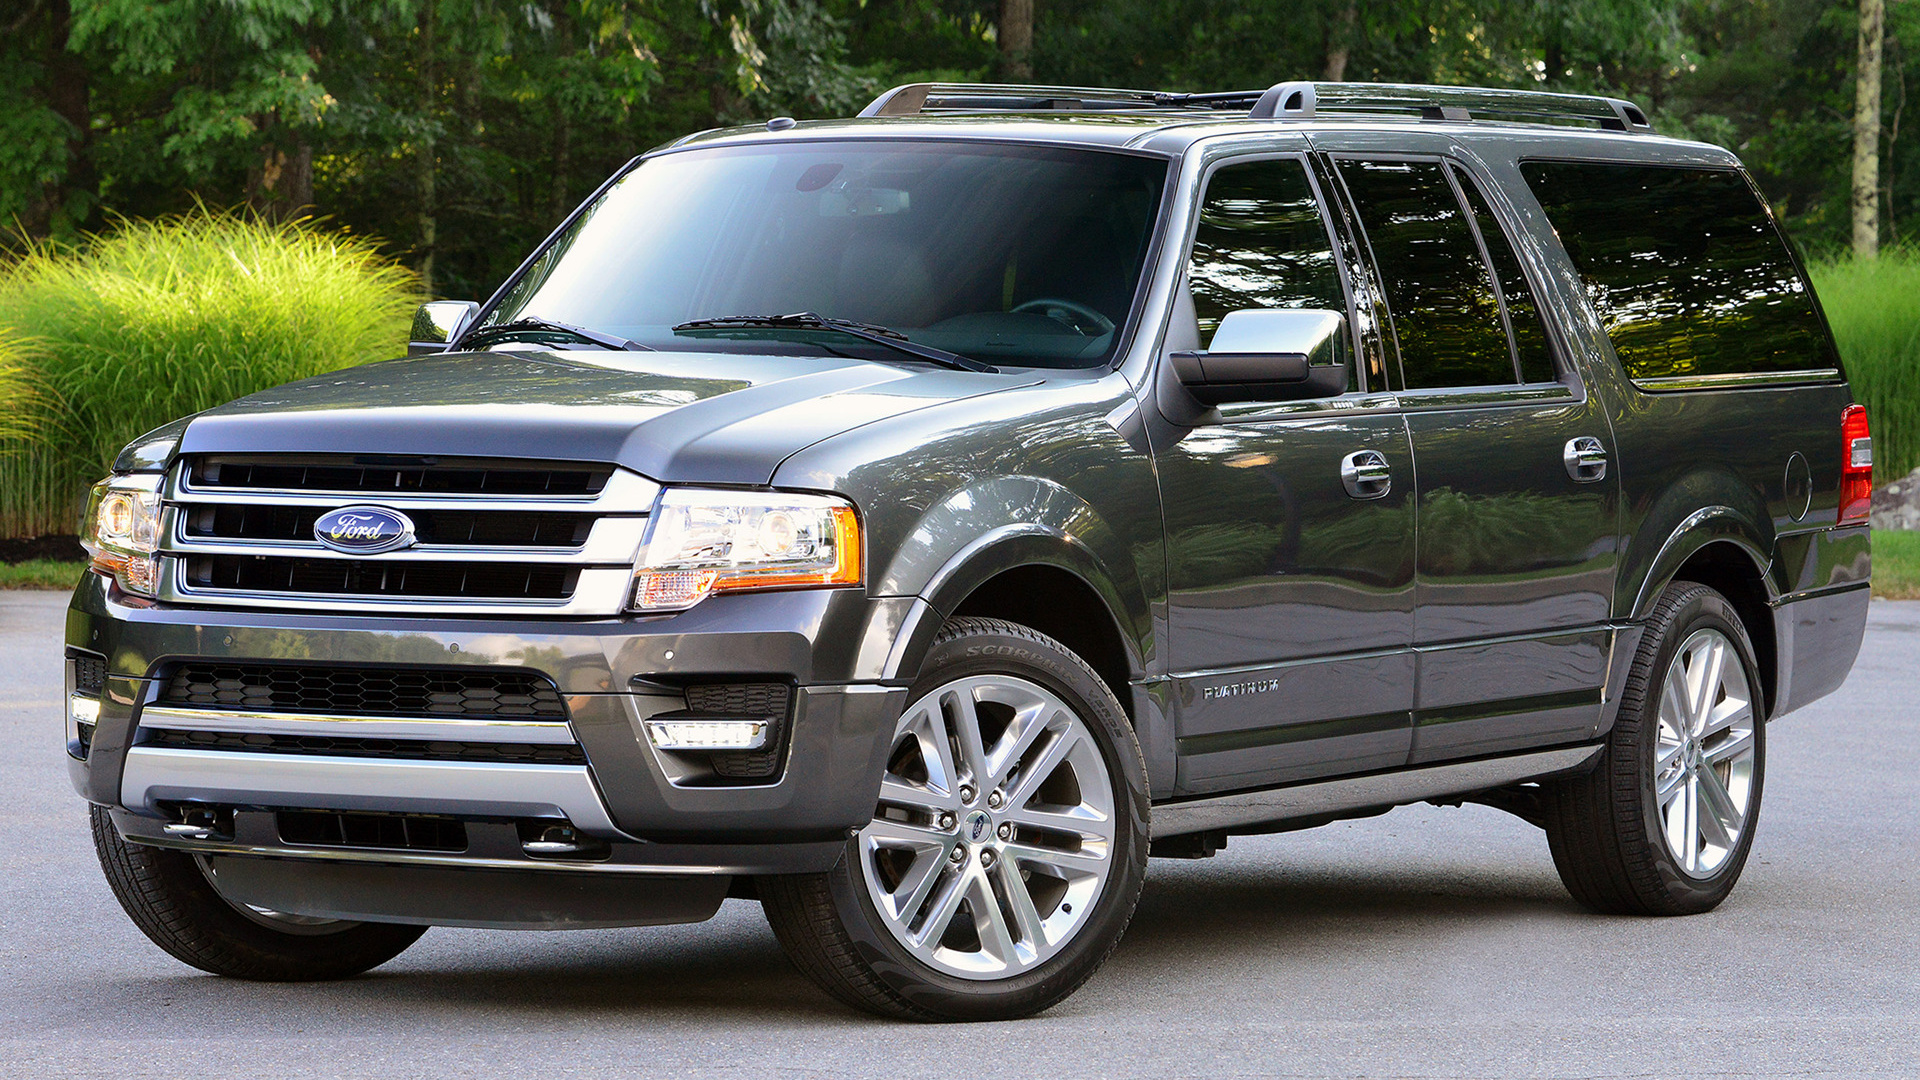 Ford Expedition El Platinum 2015 Wallpapers And Hd